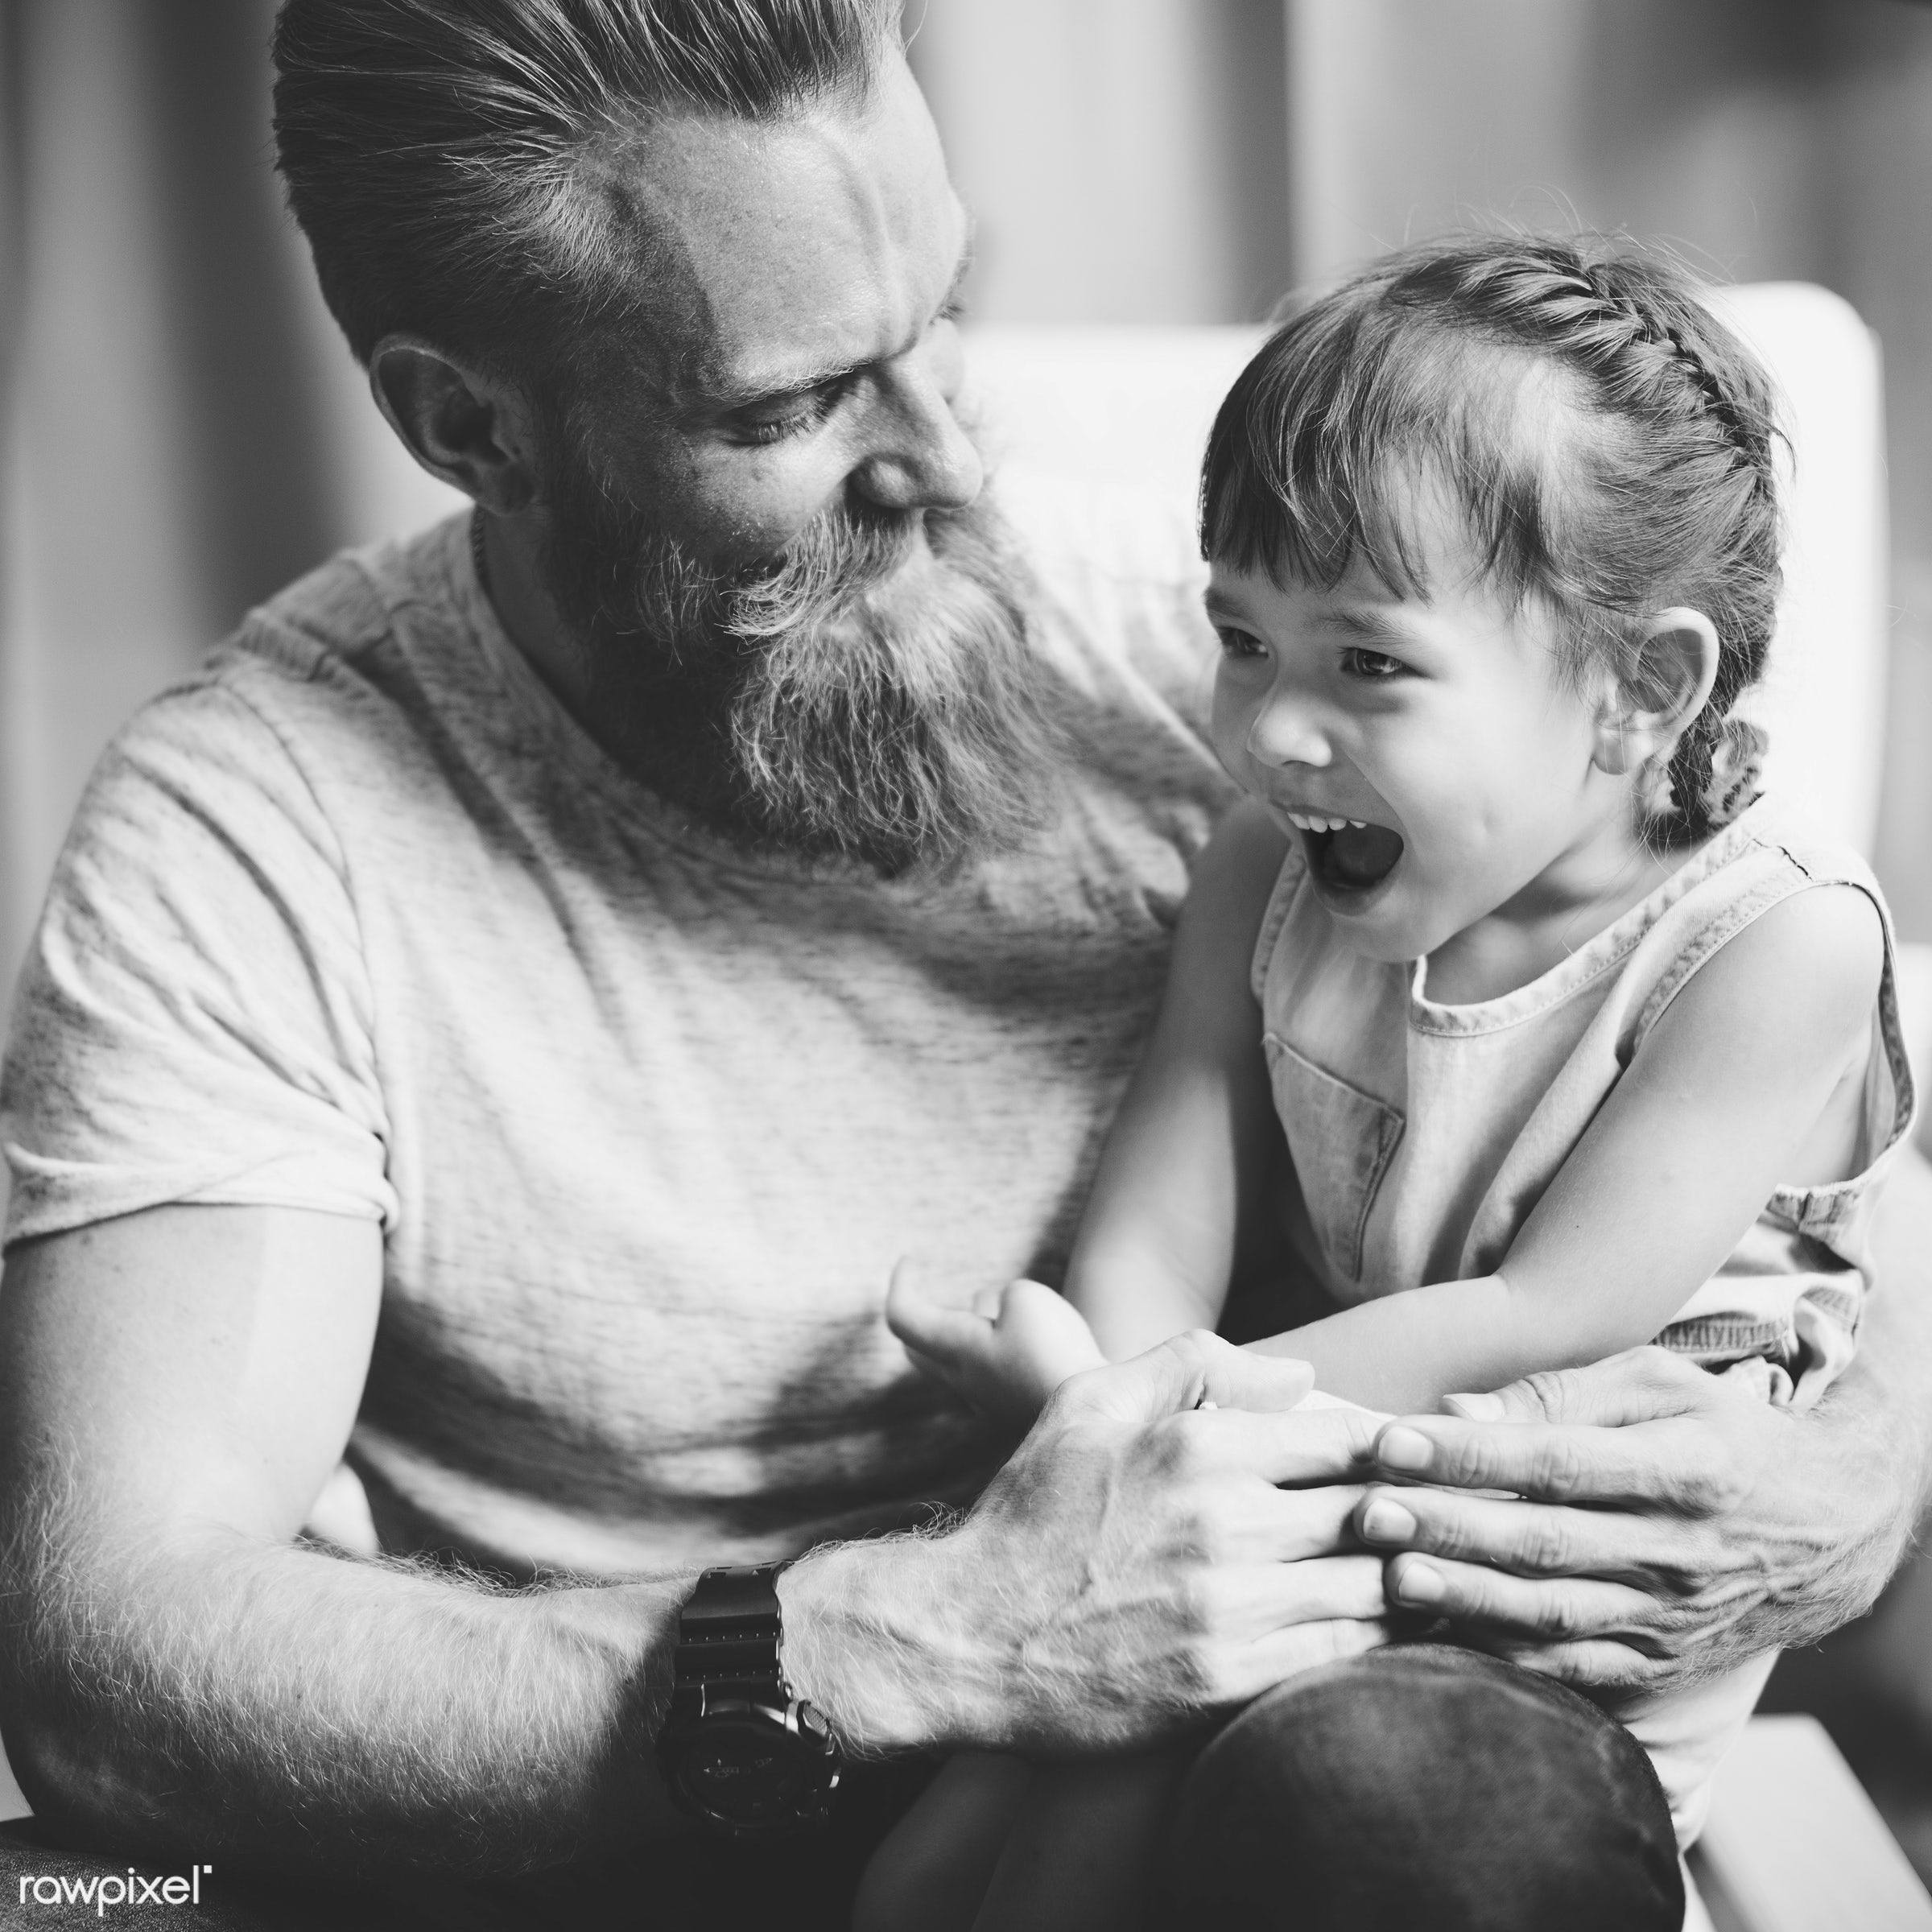 dad, activity, bonding, carefree, casual, cheerful, child, childhood, communication, daddy, daughter, enjoyment, ethnicity,...